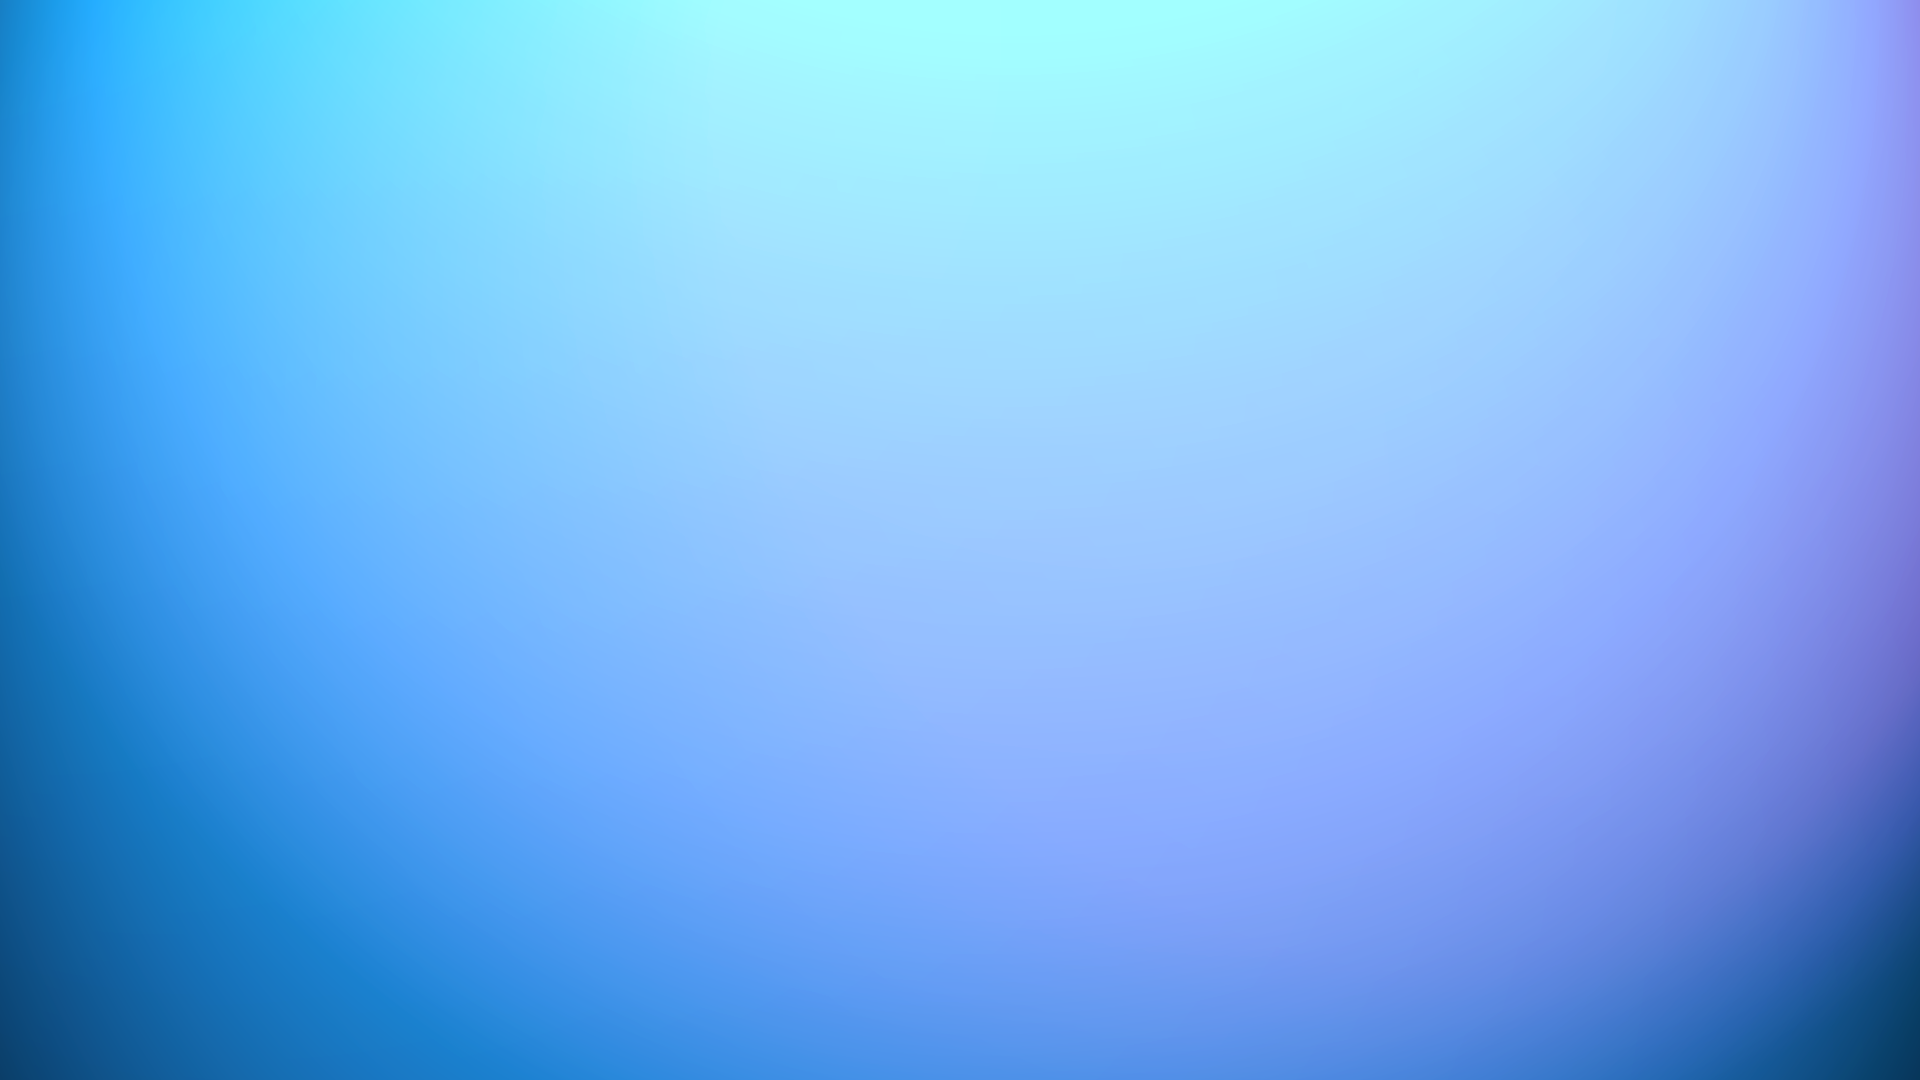 blue white gradient Blue gradient HD Wallpaper 1920x1080